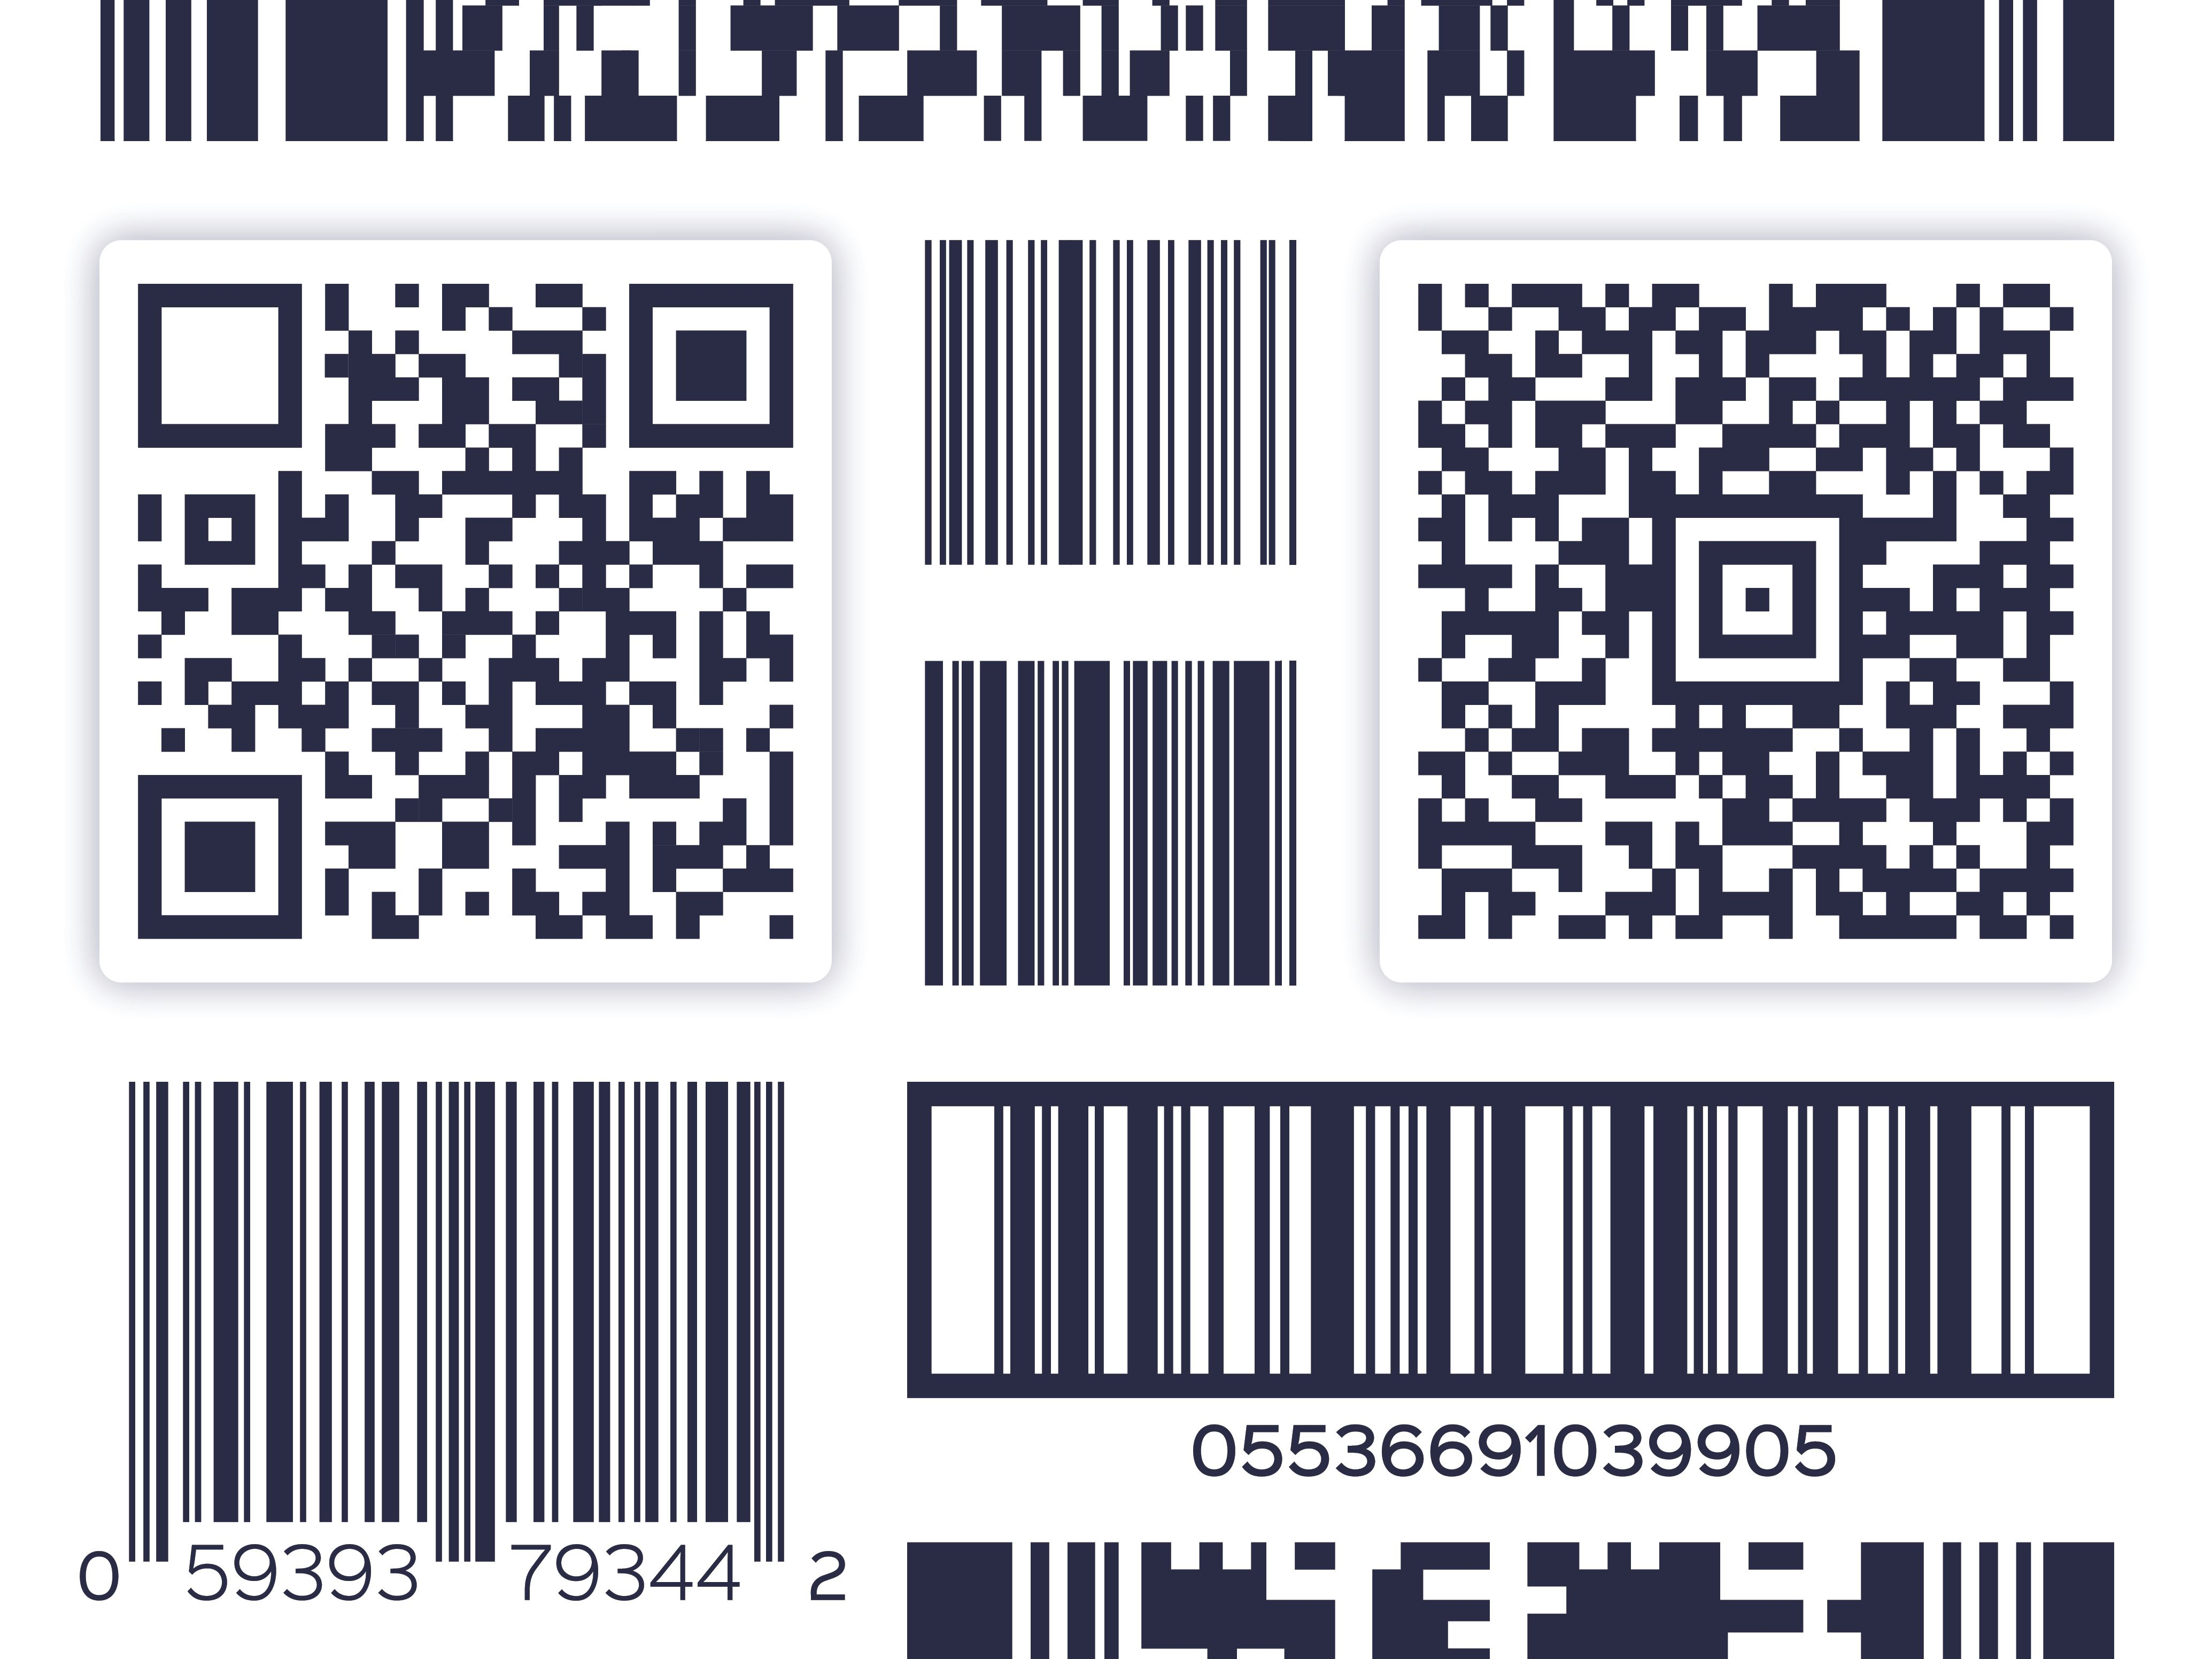 How to Use a QR Code on Your Resume